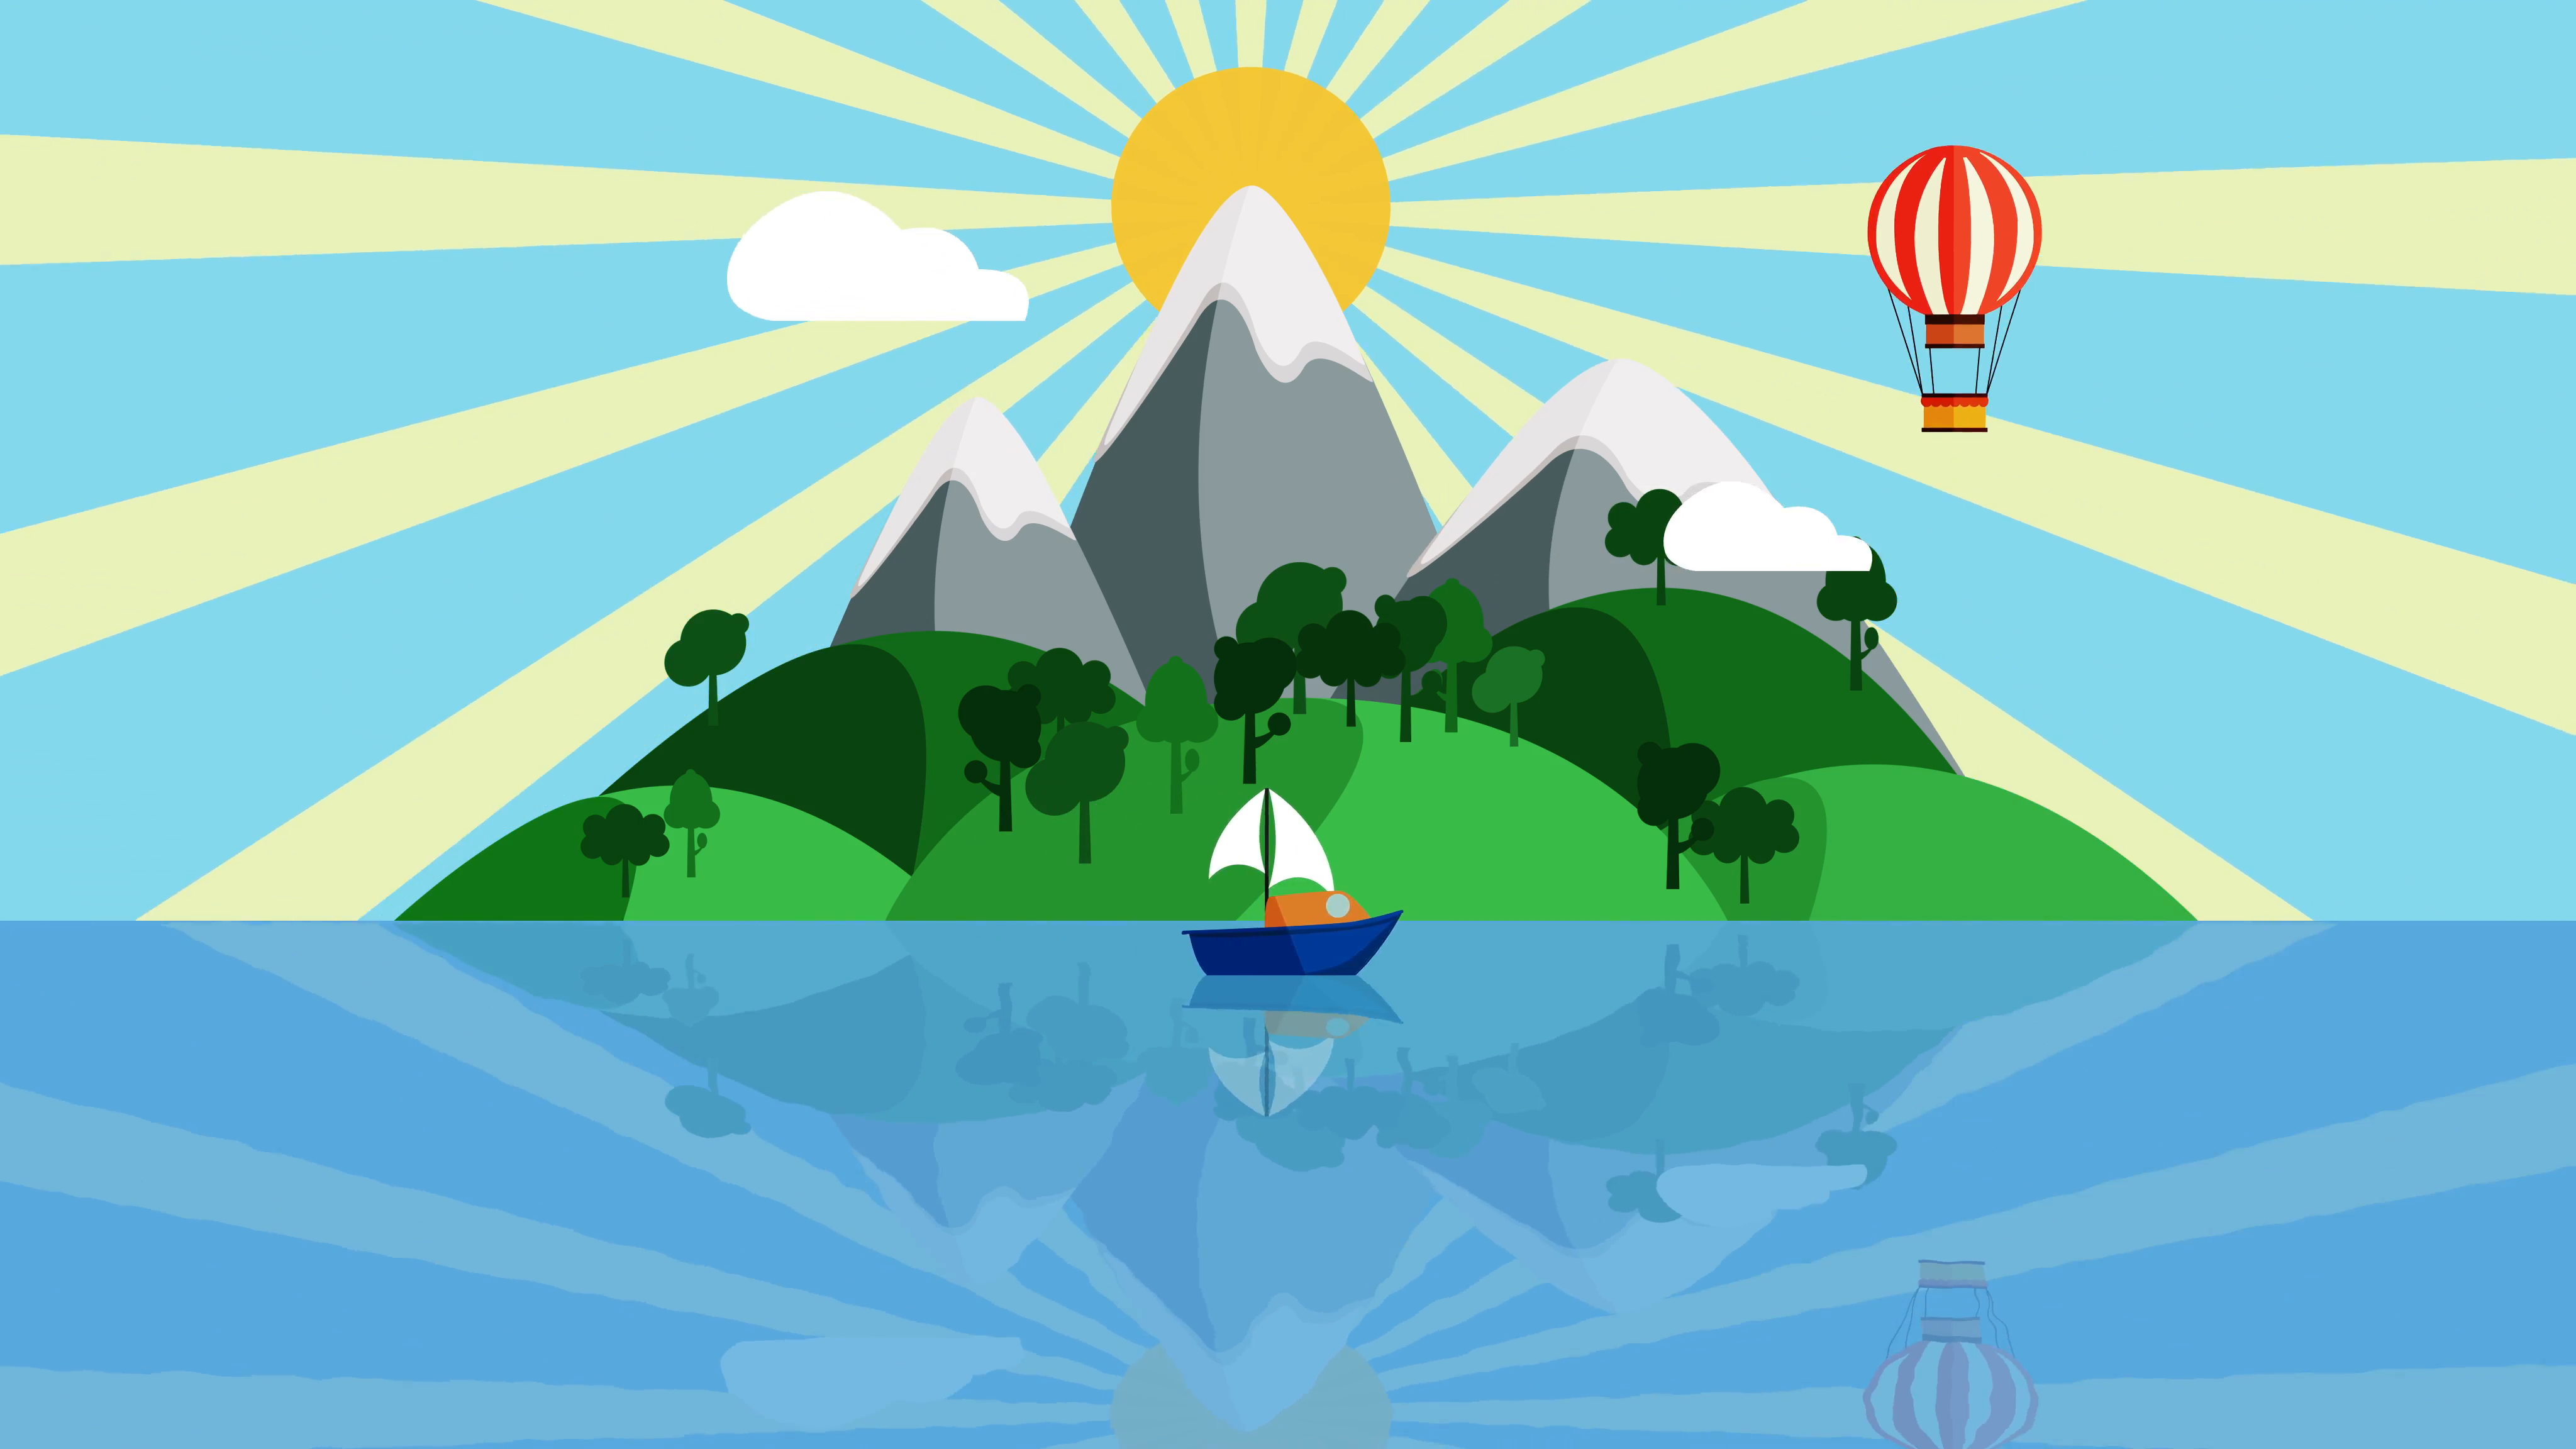 4096x2304 Cartoon Boat Sailing Slowly In The Ocean With Small Tropical